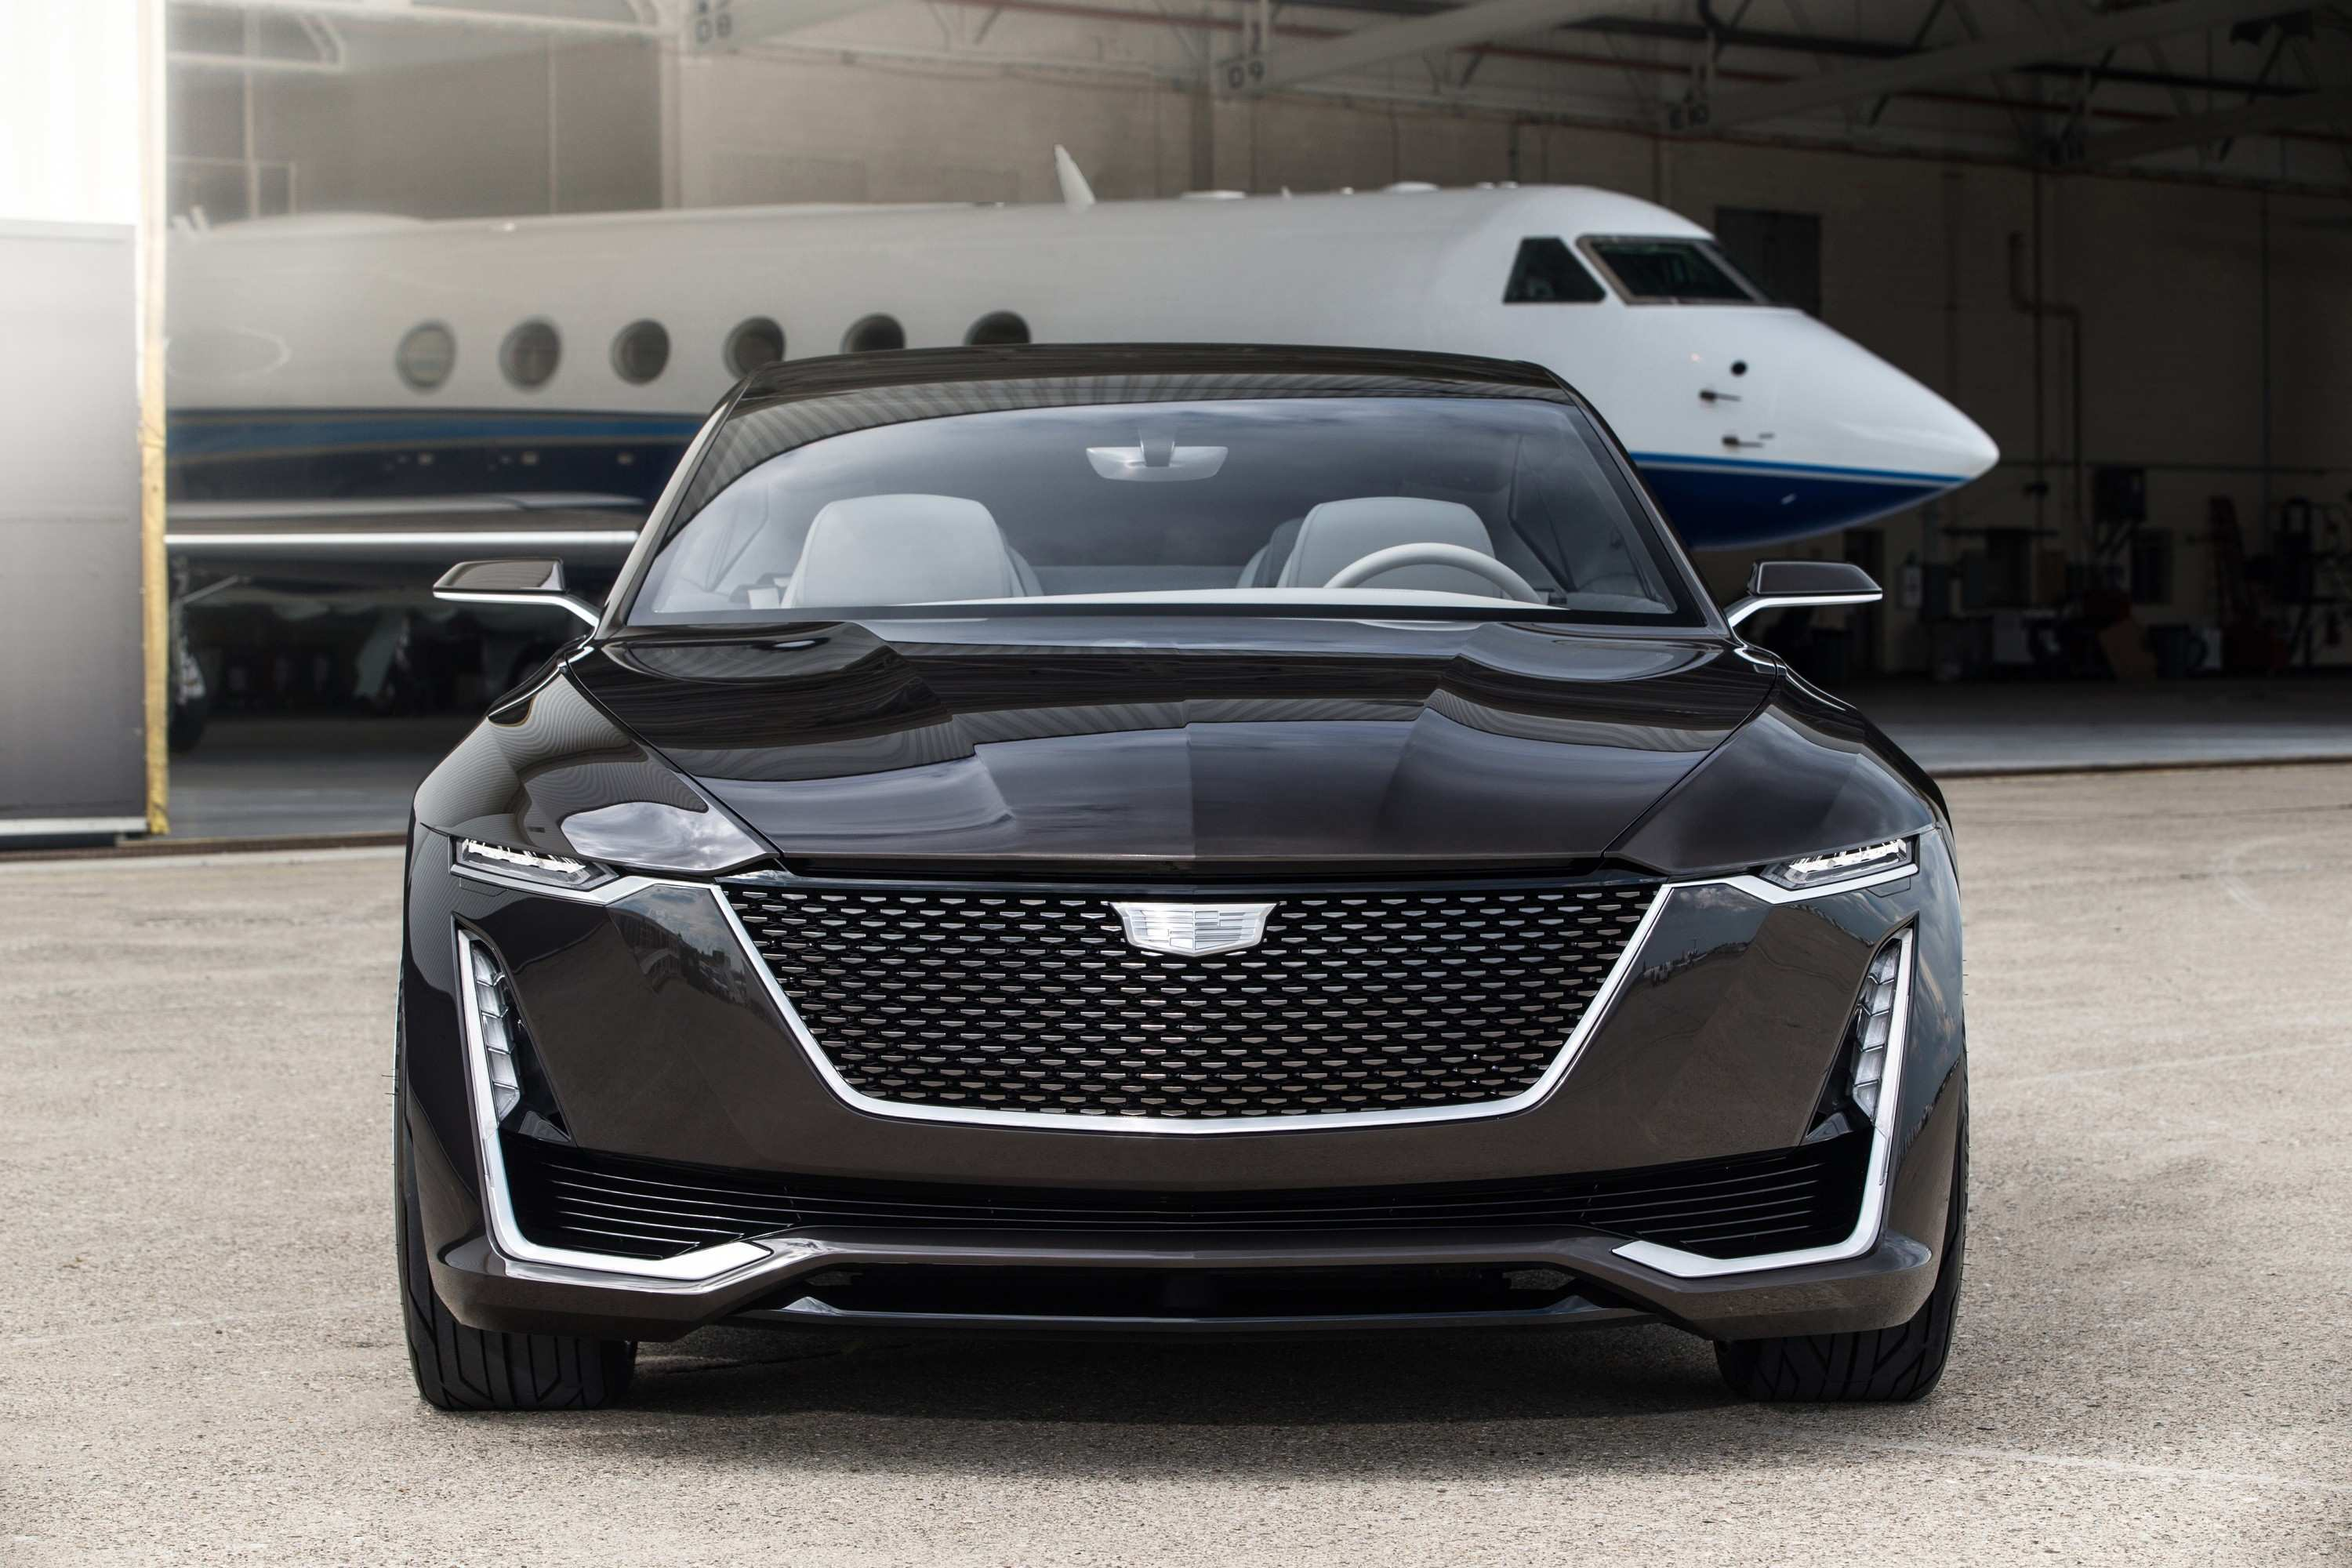 75 All New Cadillac New Cars For 2020 Release